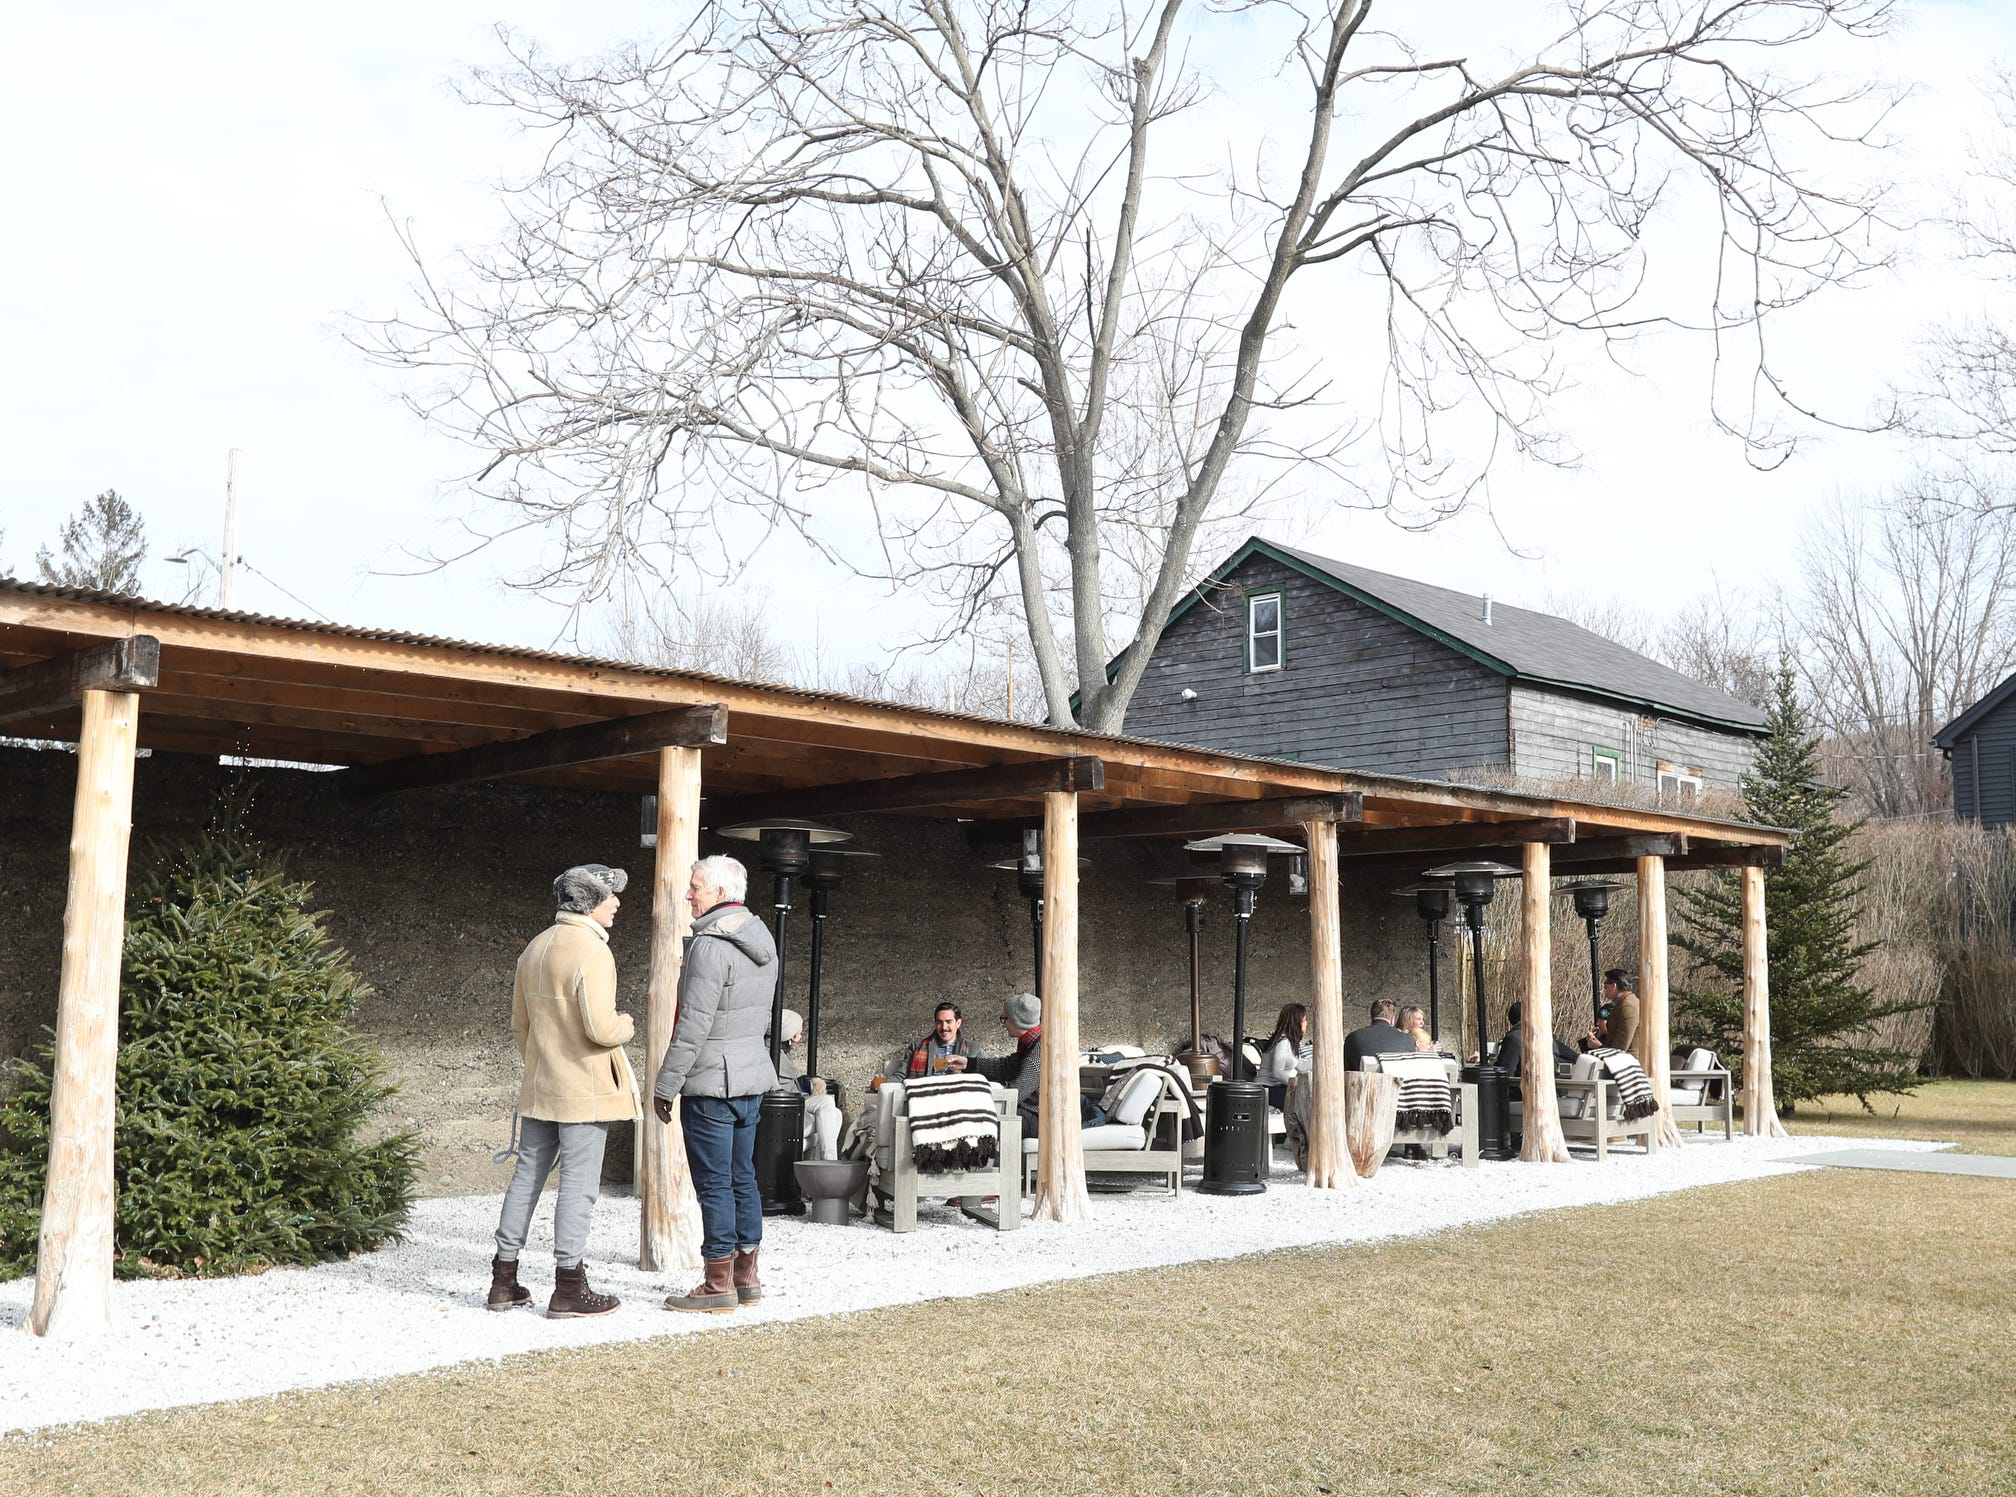 Guests enjoy sitting outside at the Valley Rock Inn & Mountain Club in Sloatsburg on Saturday, January 12, 2019.